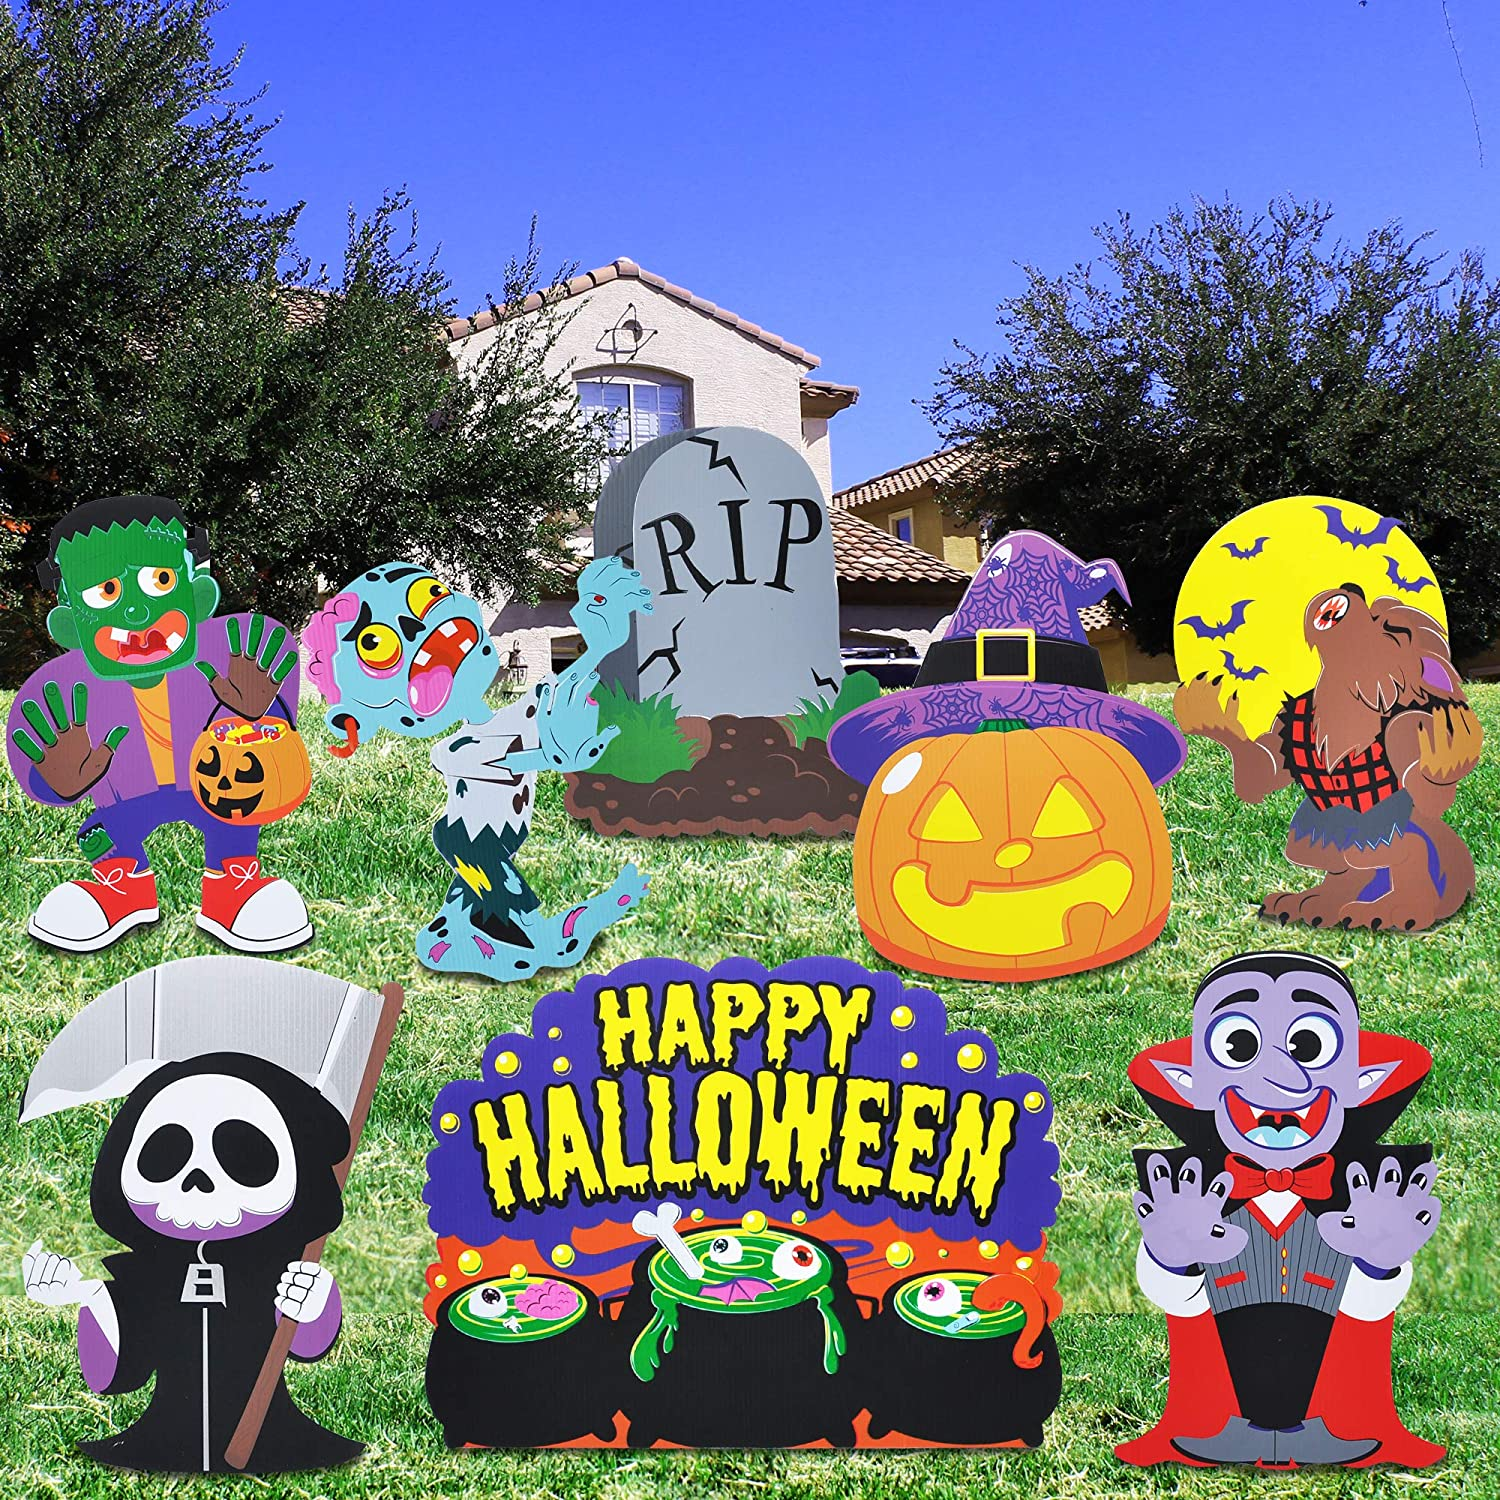 8 PCs Halloween Outdoor Decorations, Corrugate Yard Stake Signs for Lawn Yard Prop Decorations, Trick-or-Treating, Outdoor/Indoor Décor